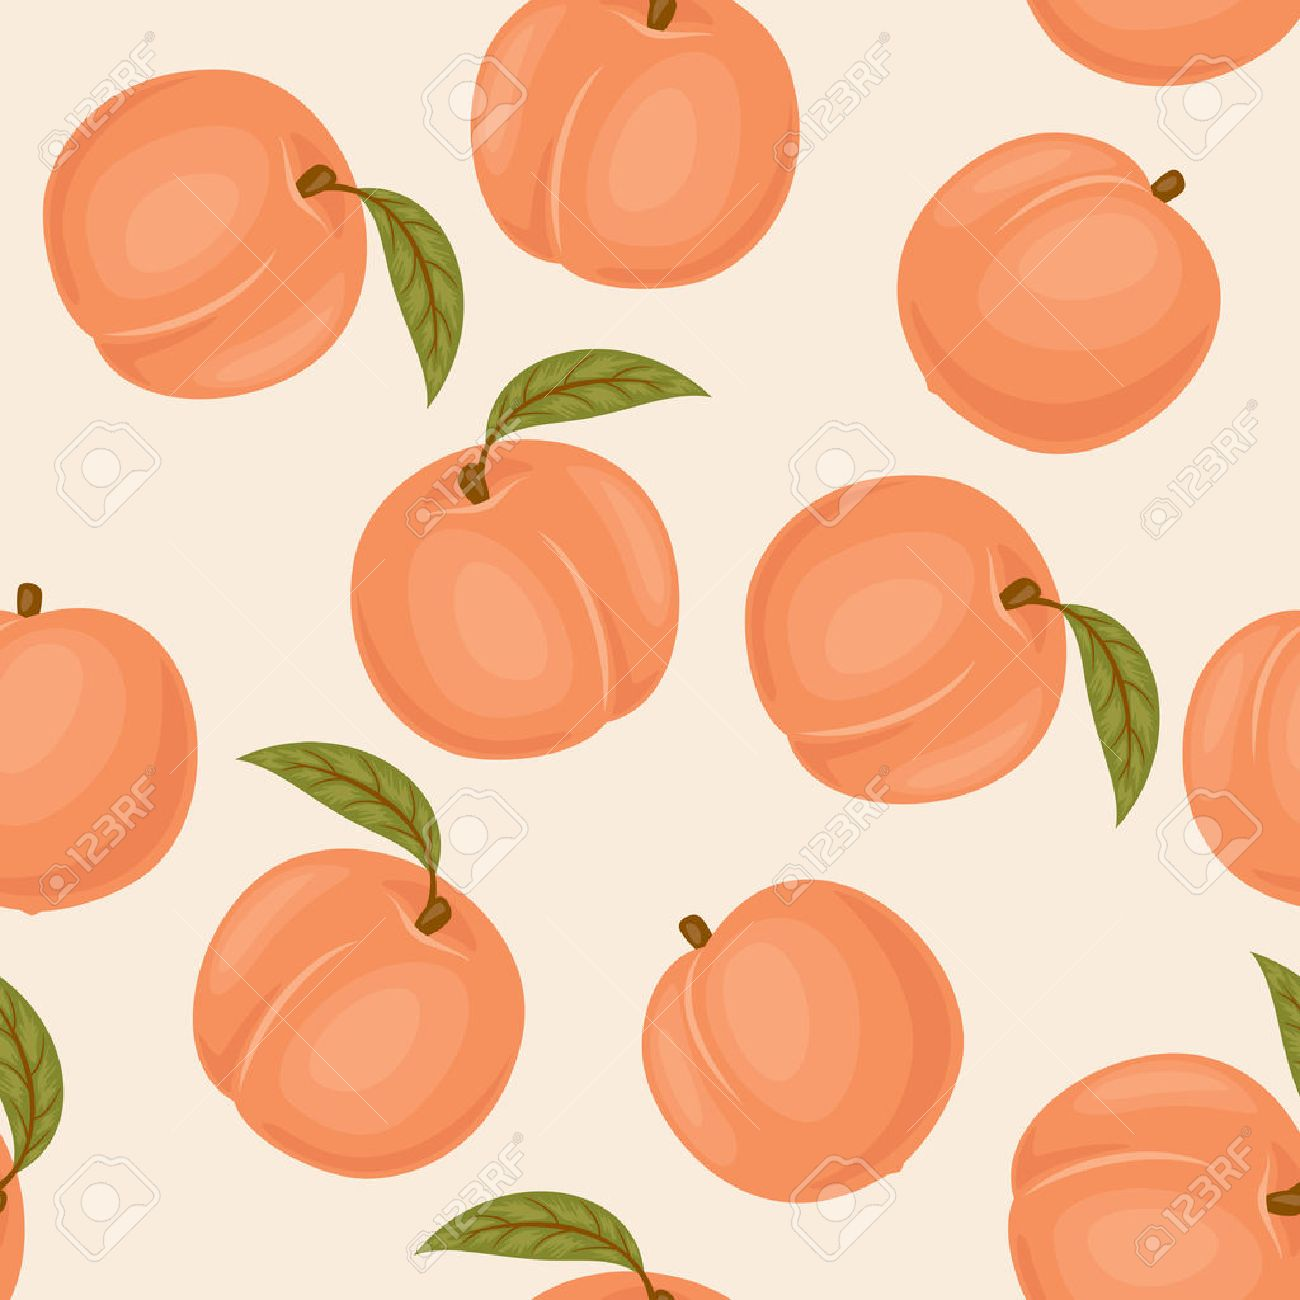 Peach Seamless Pattern Peach Vector Wallpaper Peaches With